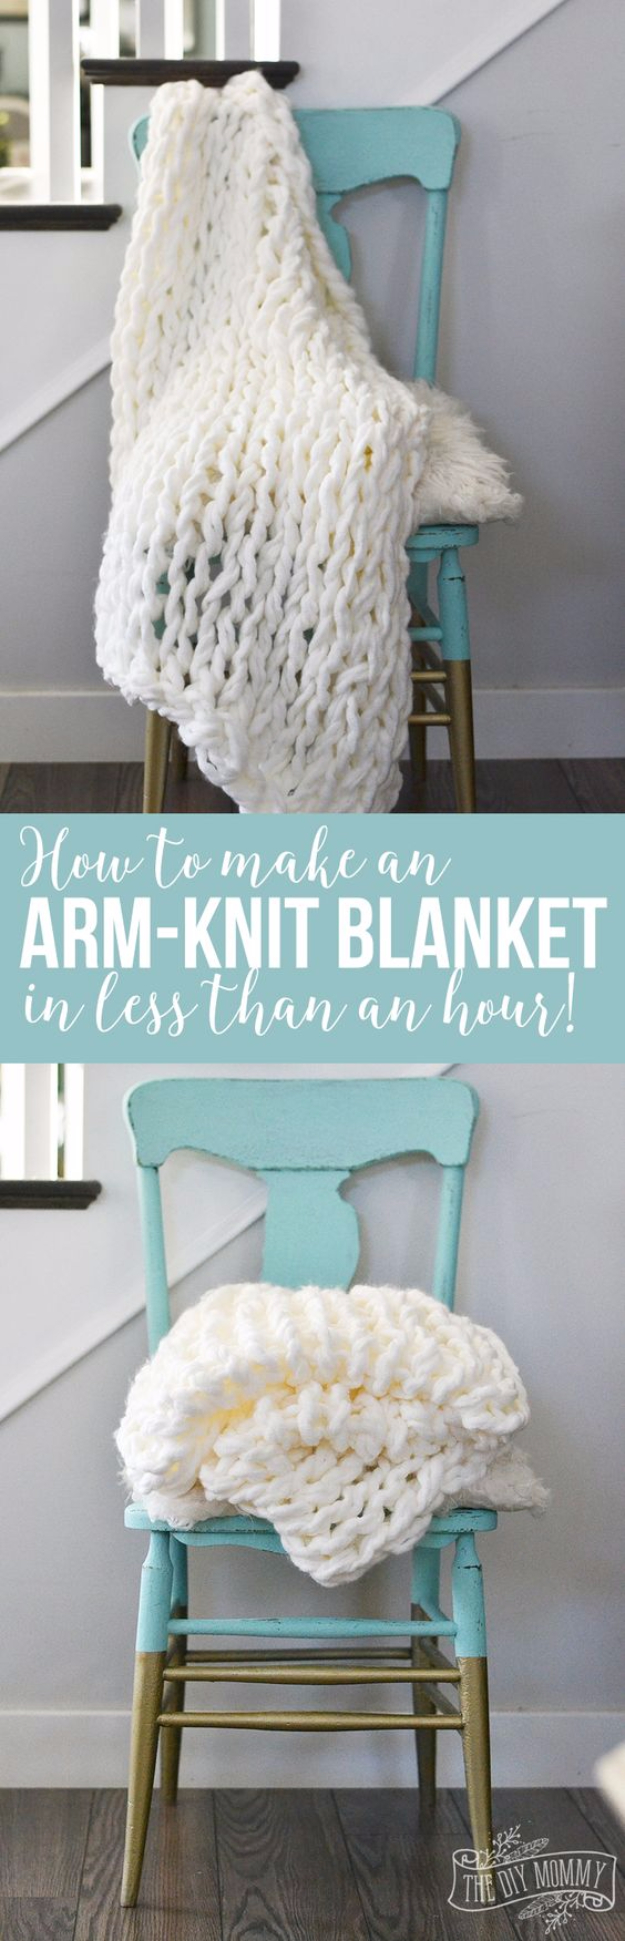 32 Easy Knitted Gifts - Arm Knit Blanket In Less Than An Hour - Last Minute Knitted Gifts, Best Knitted Gifts For Anyone, Easy Knitted Gifts To Make, Knitted Gifts For Friends, Easy Knitting Patterns For Beginners, Quick And Easy Knitted Gifts http://diyjoy.com/easy-knitted-gifts